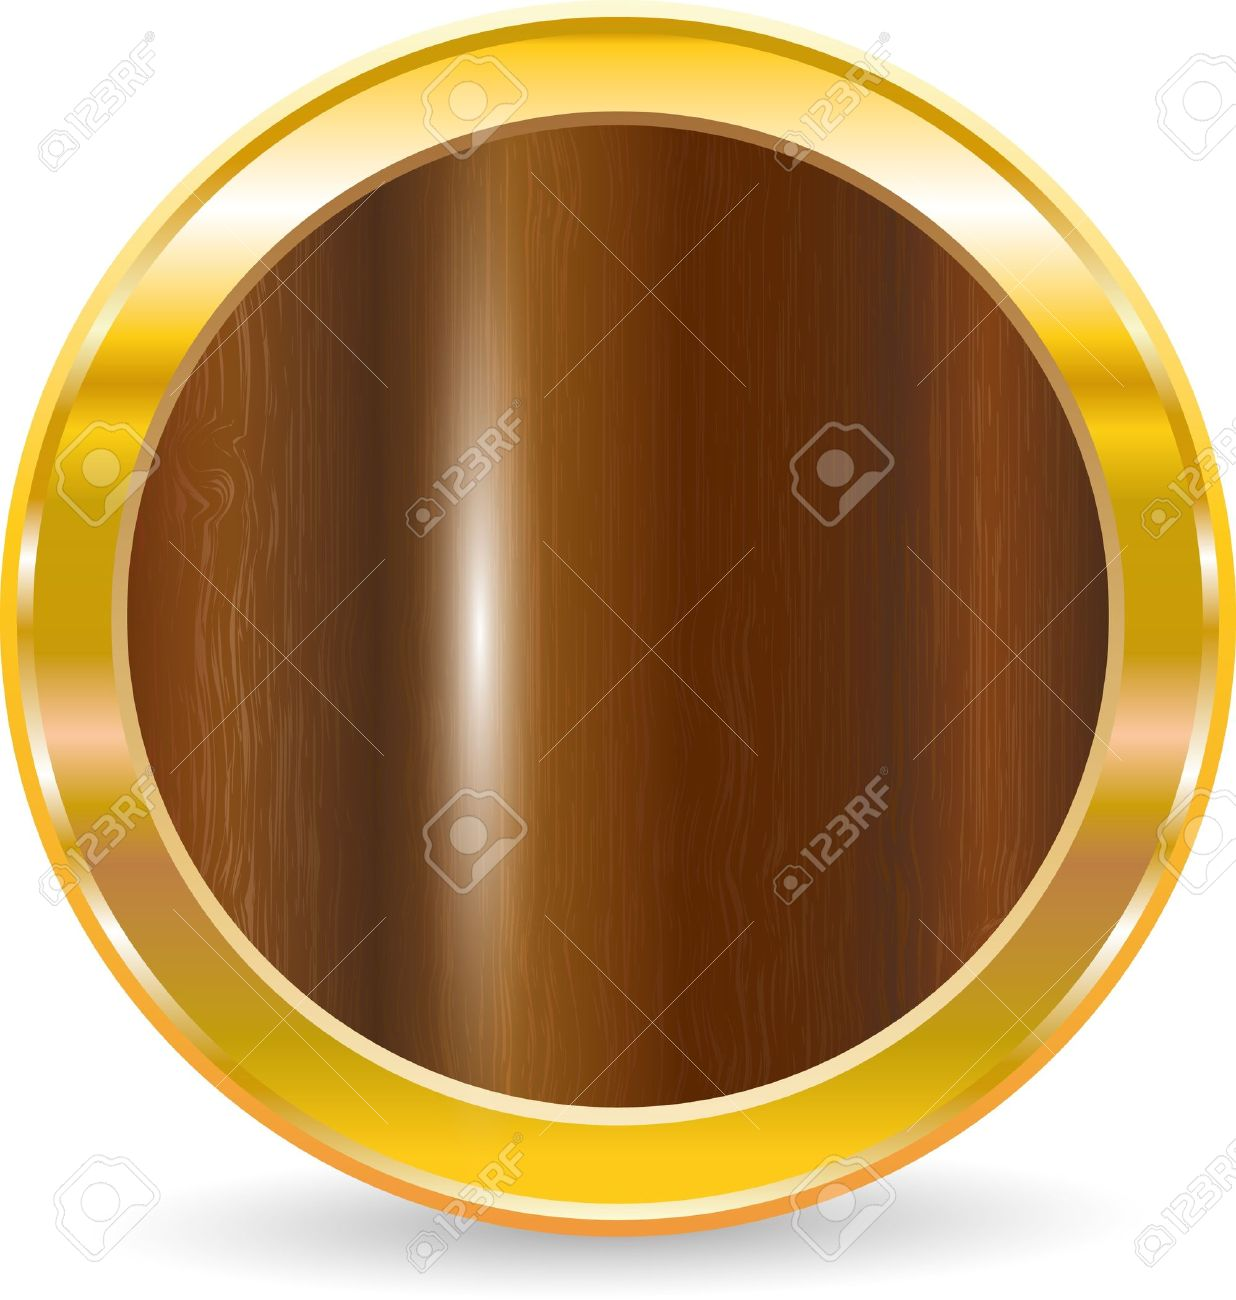 Gold circle frame with wood texture, vector illustration Stock Vector - 9764855